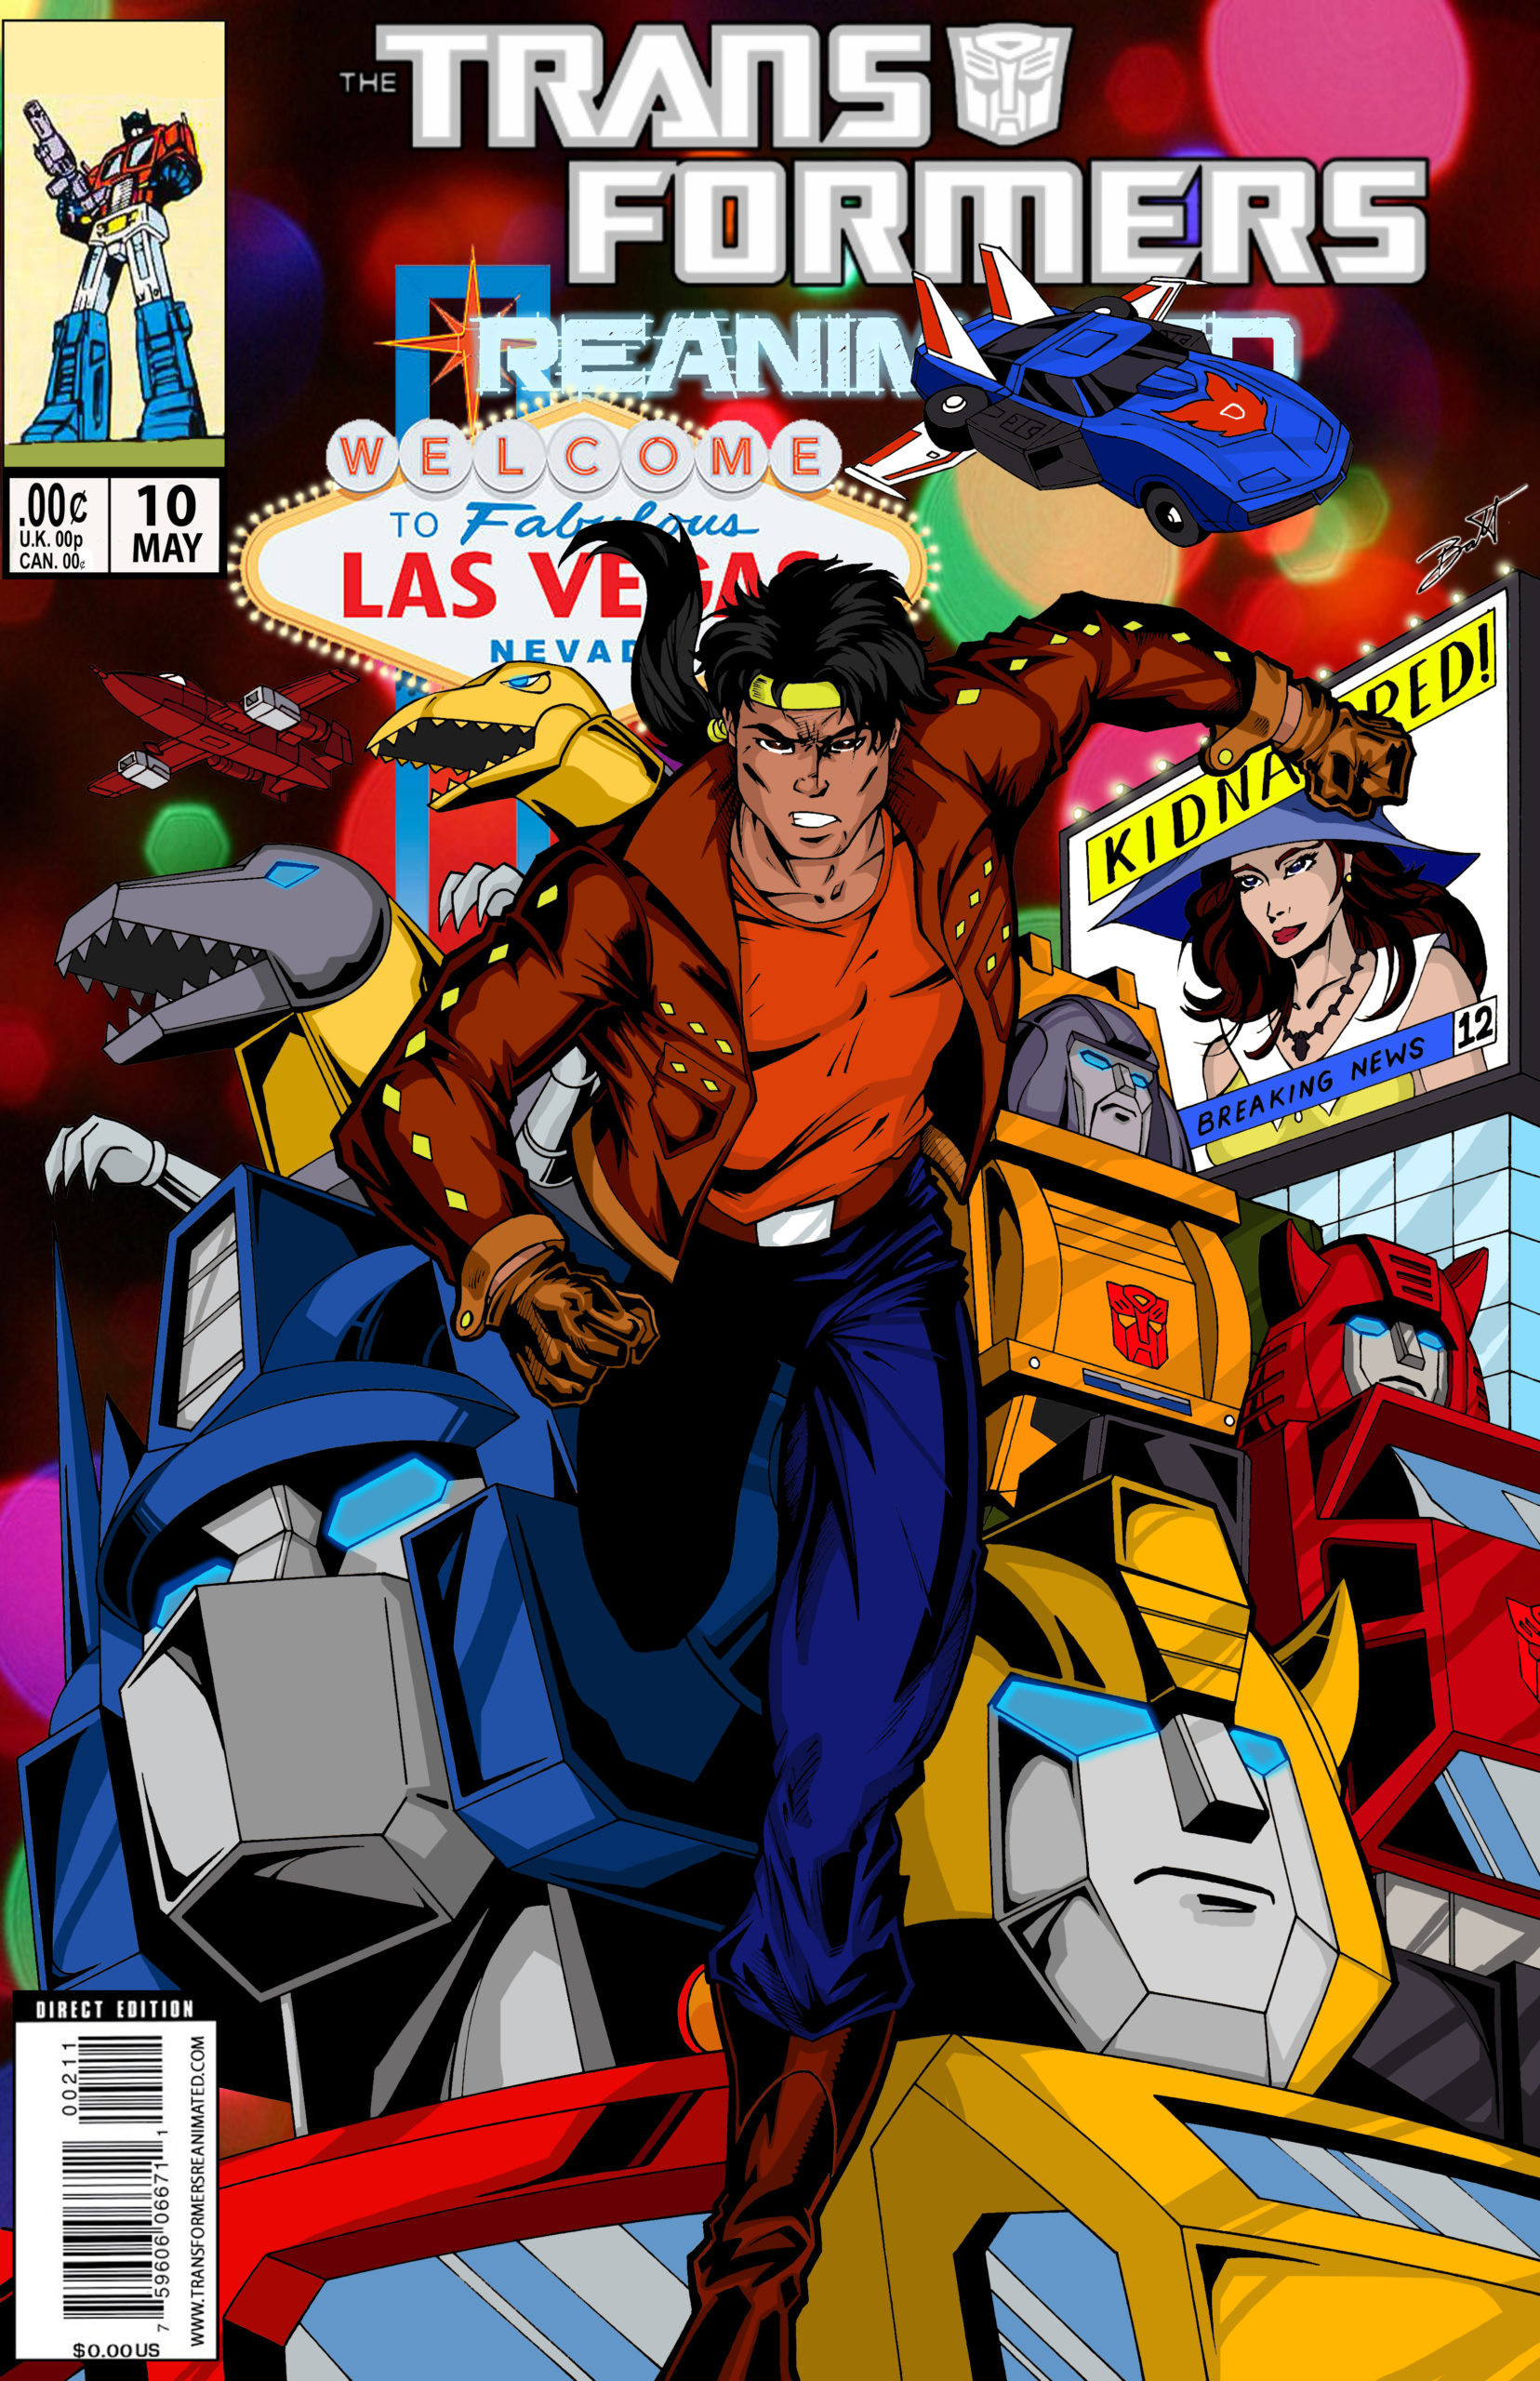 Transformers: REANIMATED Issue 10: For The Love of H.A.T.E., Part 1